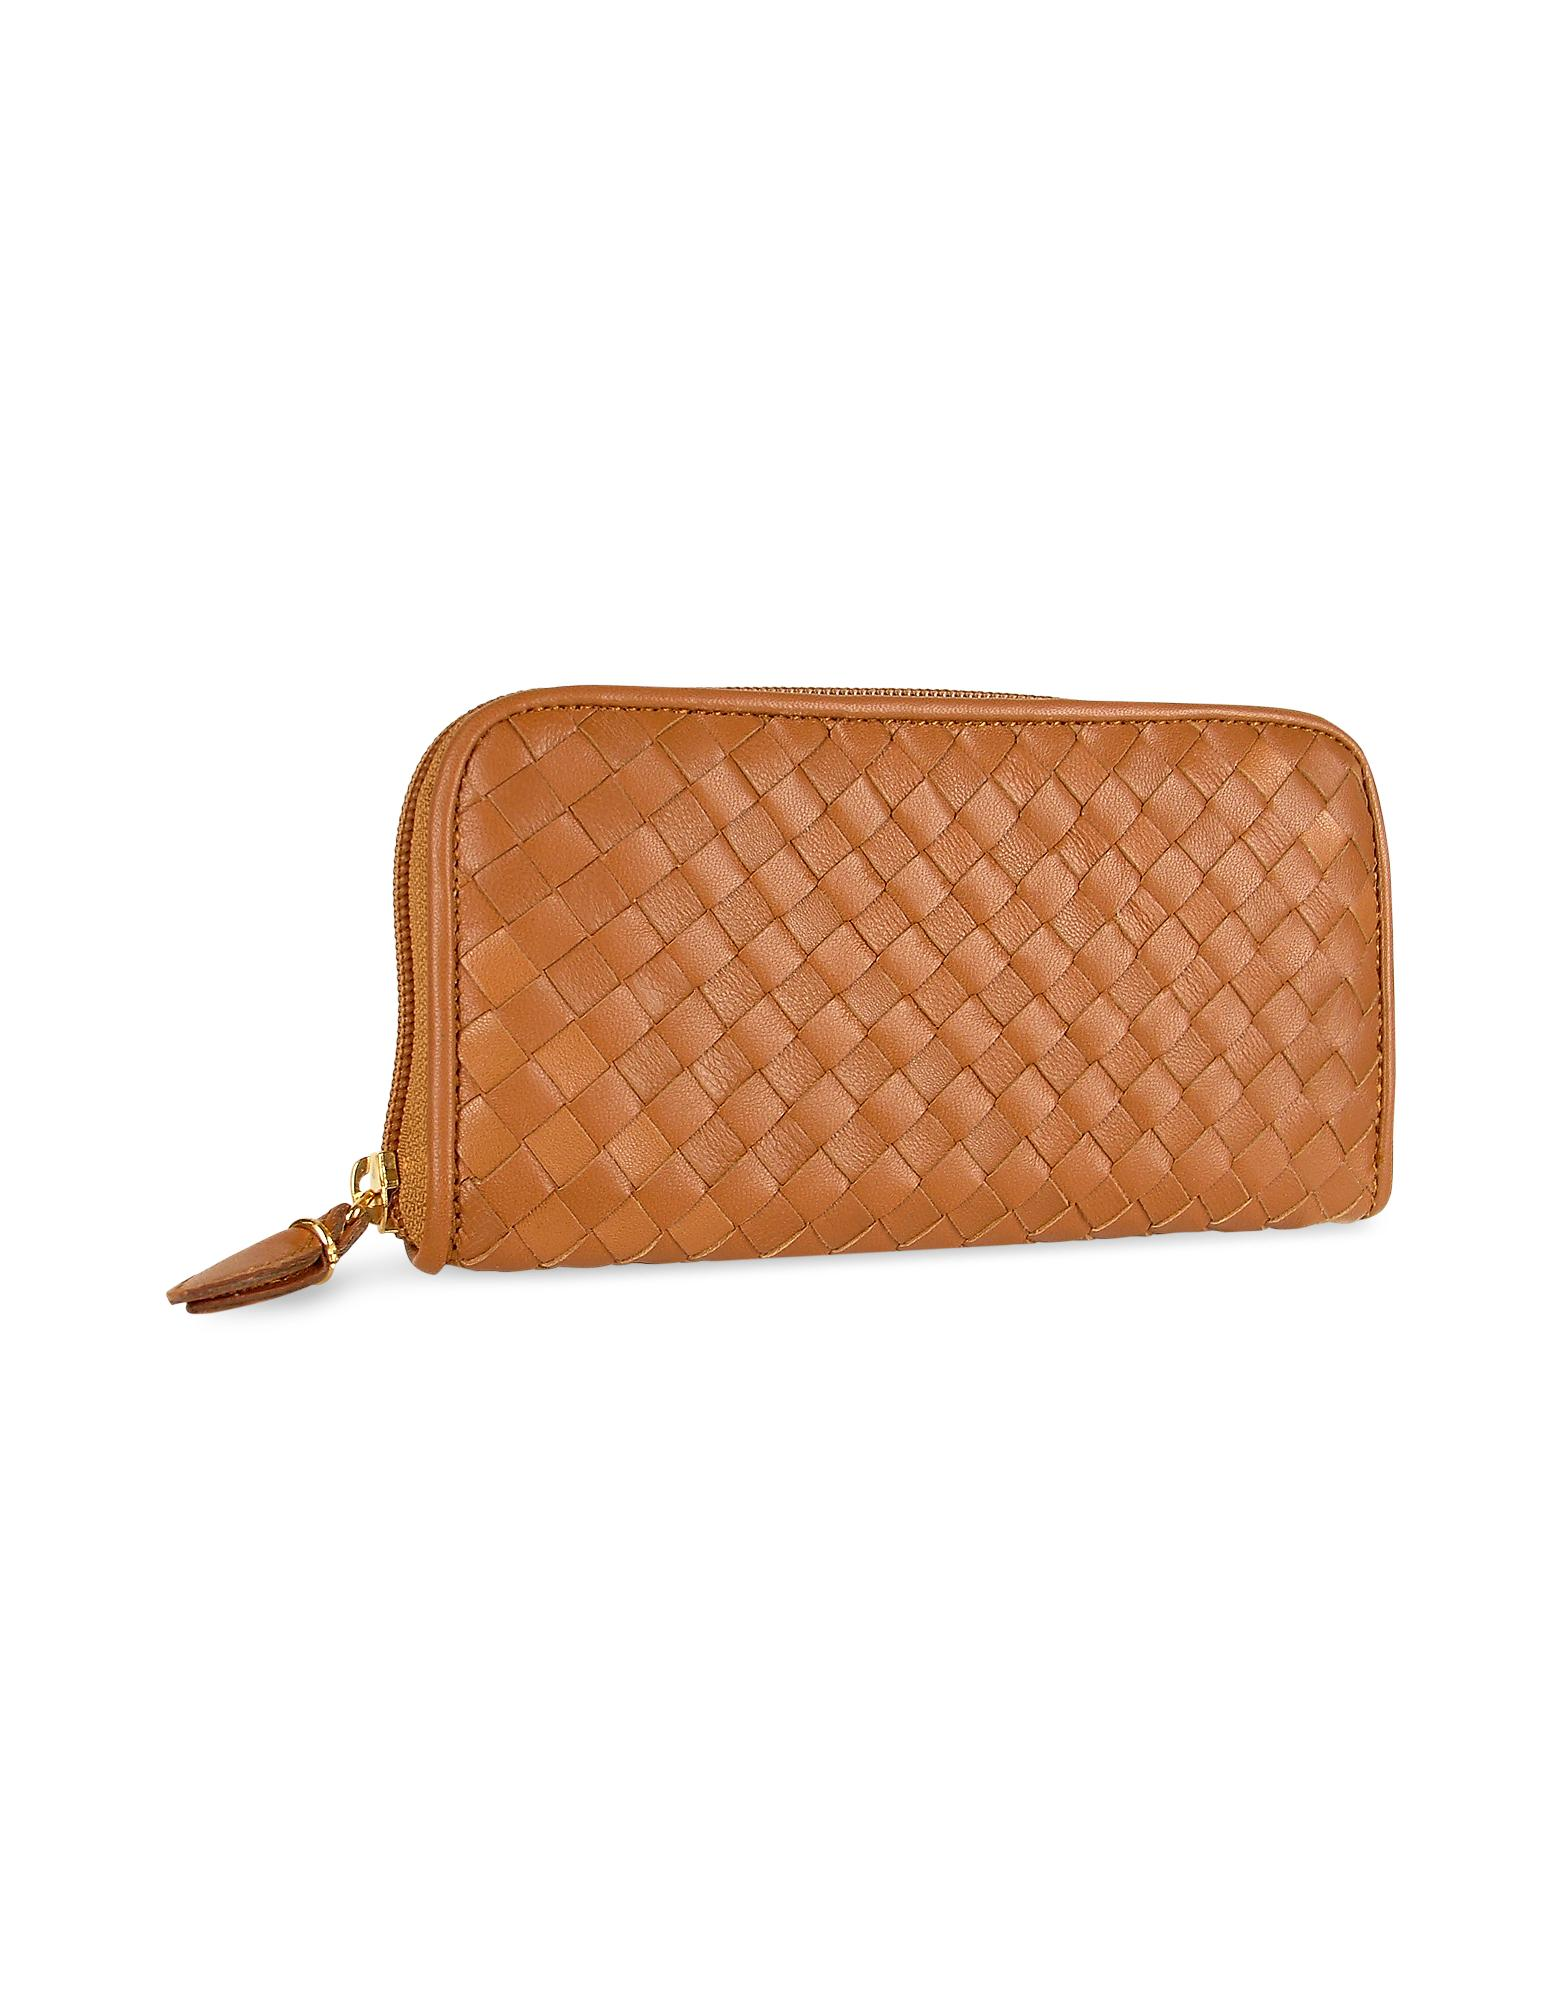 Fontanelli  Women's Brown Italian Woven Leather Concertina Zip Wallet